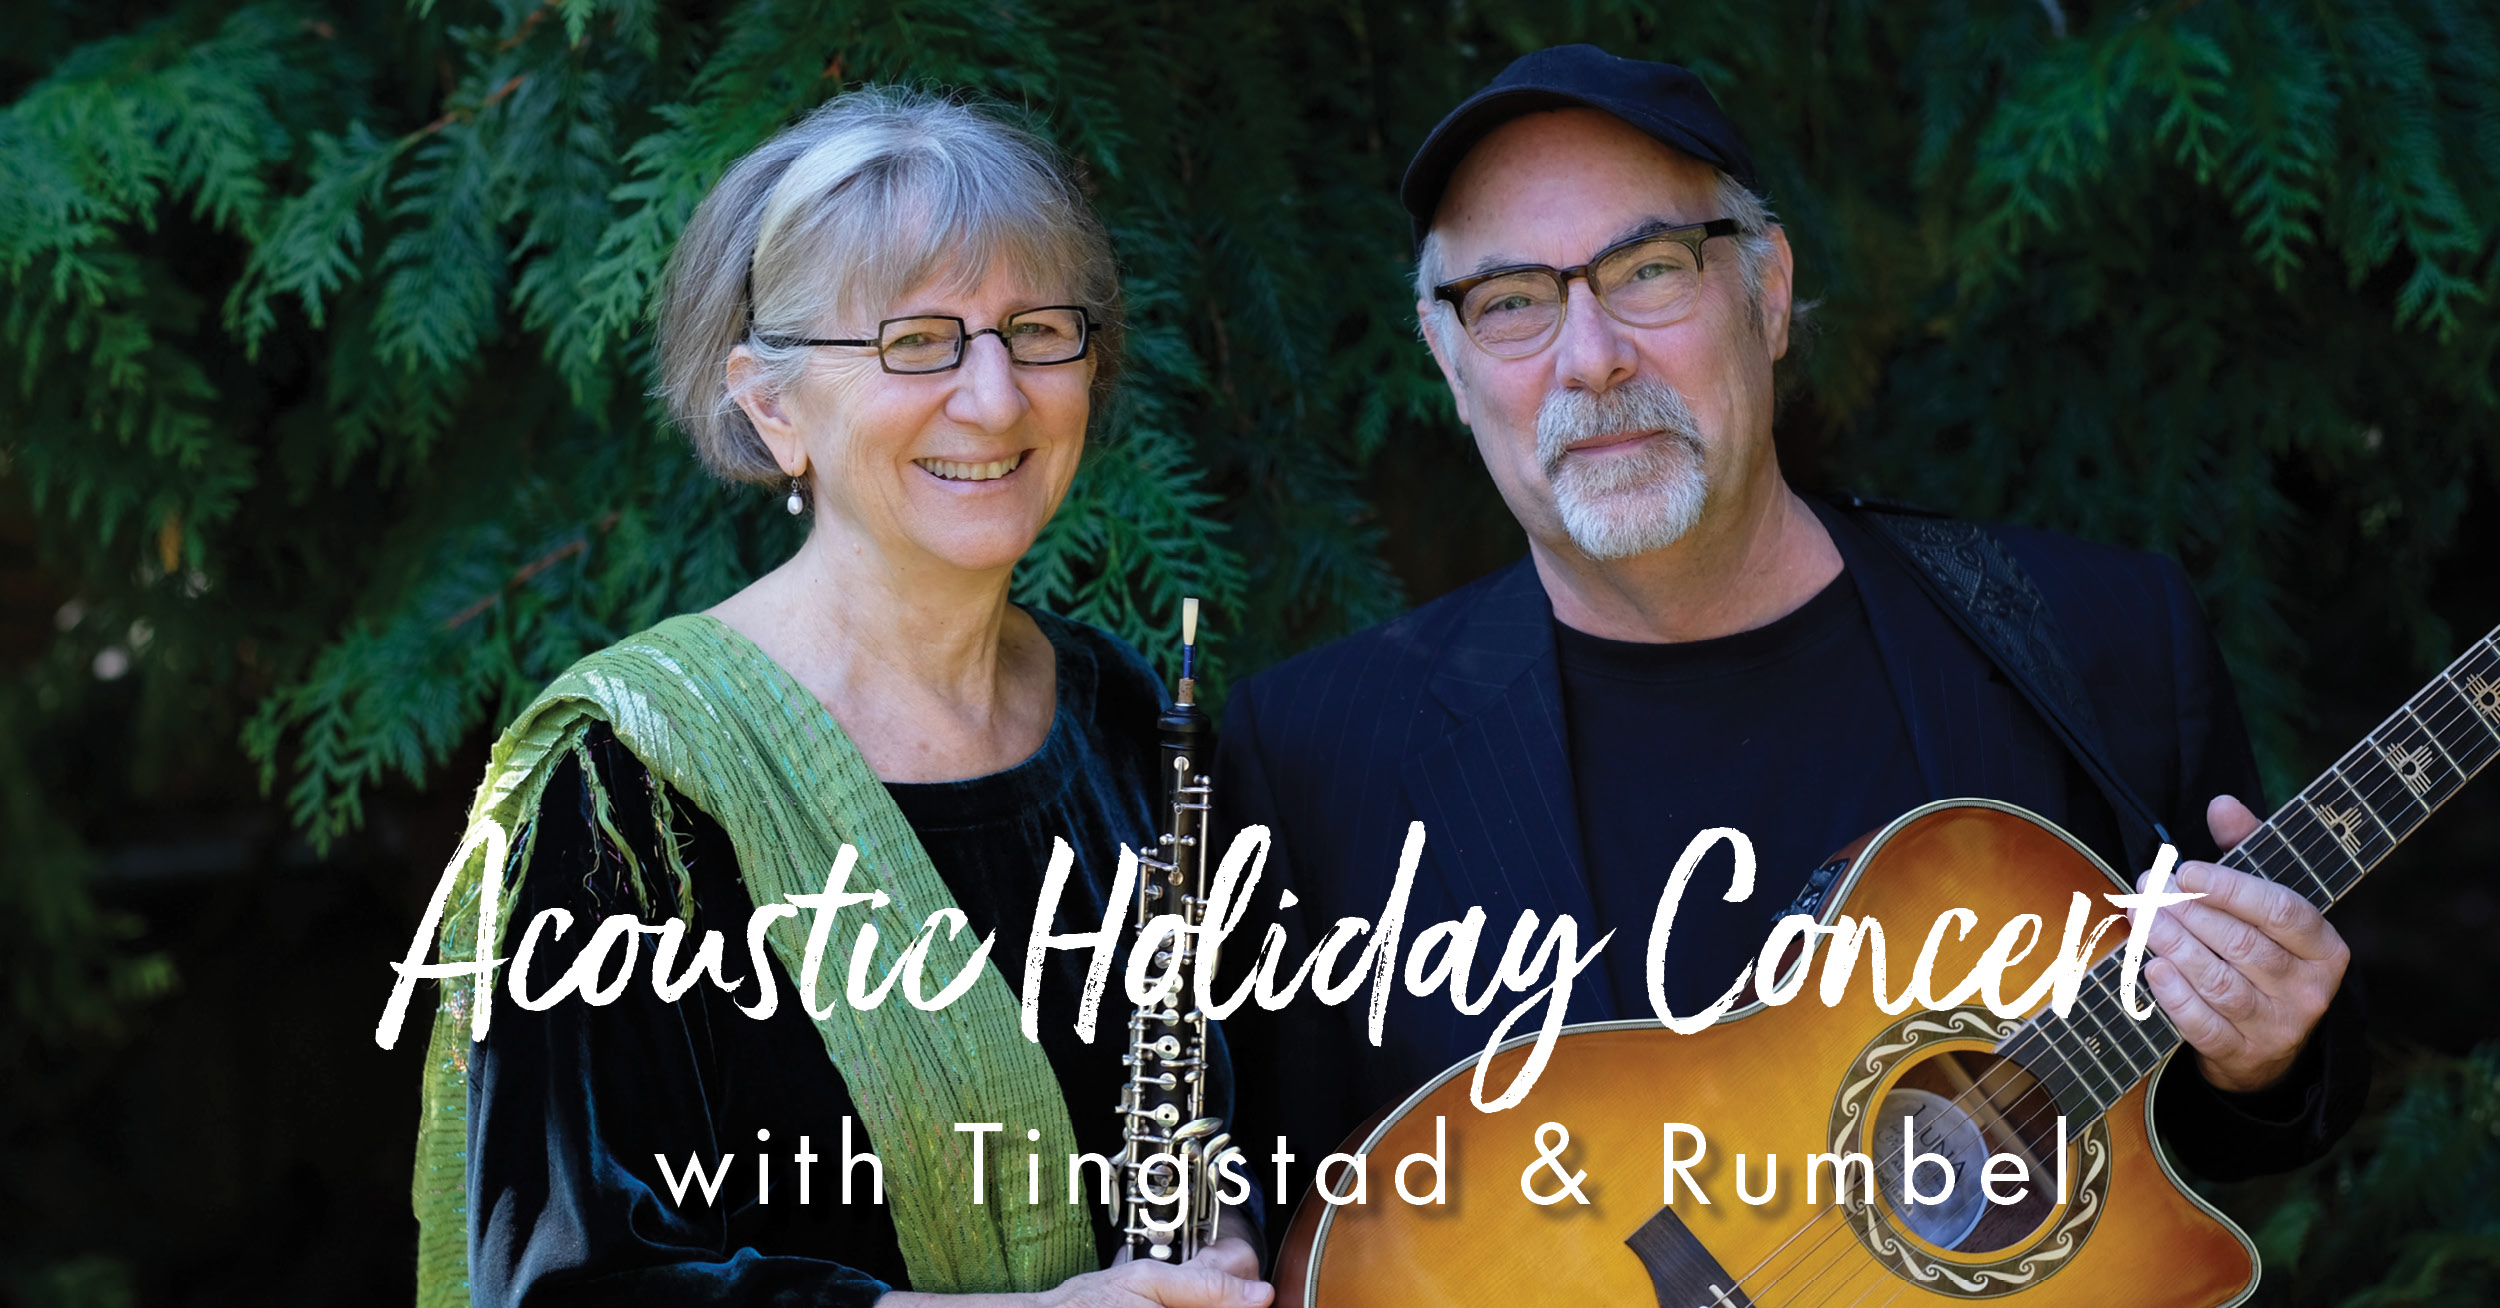 Tickets for Acoustic Holiday Concert with Tingstad & Rumbel in Seattle from BrightStar Live Events